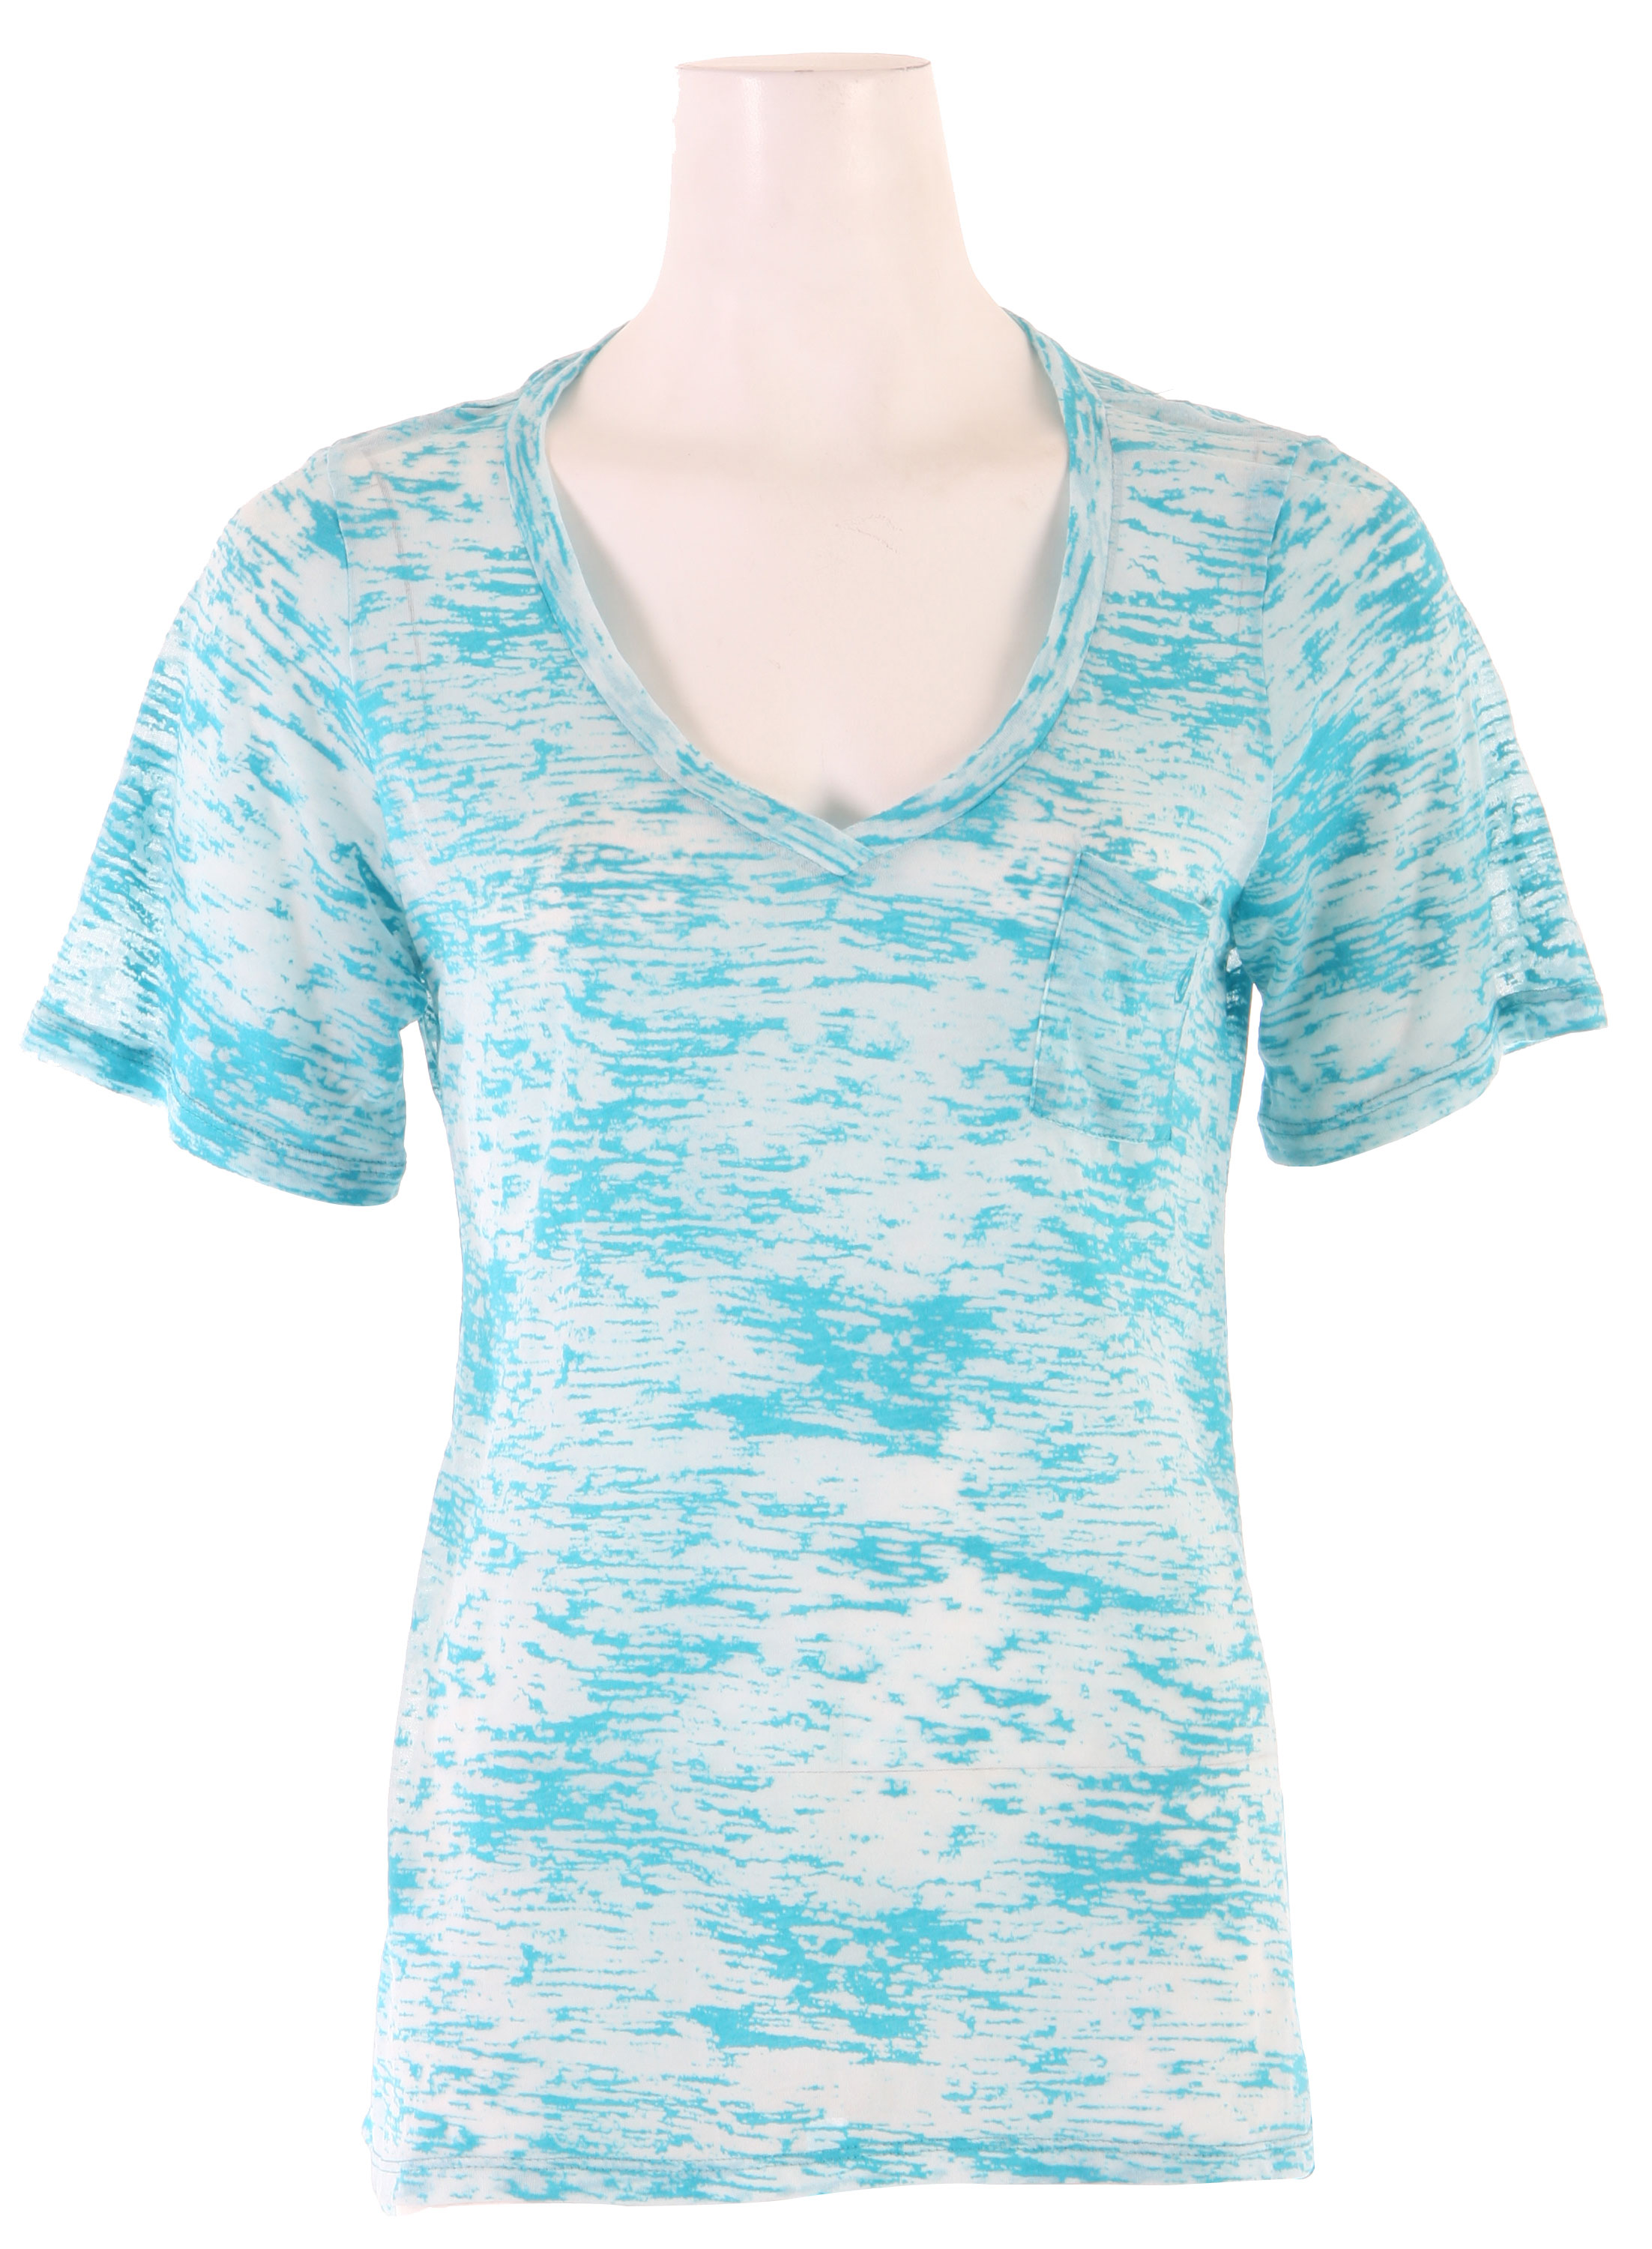 "Surf It can be hard to find sports clothing for ladies that looks feminine but Volcom Moclove V-neck Pocket T-Shirt is a t-shirt made for a woman's fit. Fashionable, sporty and comfortable, the Volcom Moclove V-neck lets women who take pride in being top in their sport to also portray their beauty. The cotton-polyester blend jersey works hard with you but stays adorable. The trendy design also shows that you are a woman who is not afraid to work hard when on the slopes.Key Features of the Volcom Moclove Vneck Pocket T-Shirt: 65% Polyester/35% Cotton Burnout Jersey. Solid Jersey Circle Tee With Patch Pocket At Front Chest. 3/4"" Stone Embroidery At Wearer's Front Pocket. Volcom Clamp Label At Wearer's Front Left Hem. - $15.95"